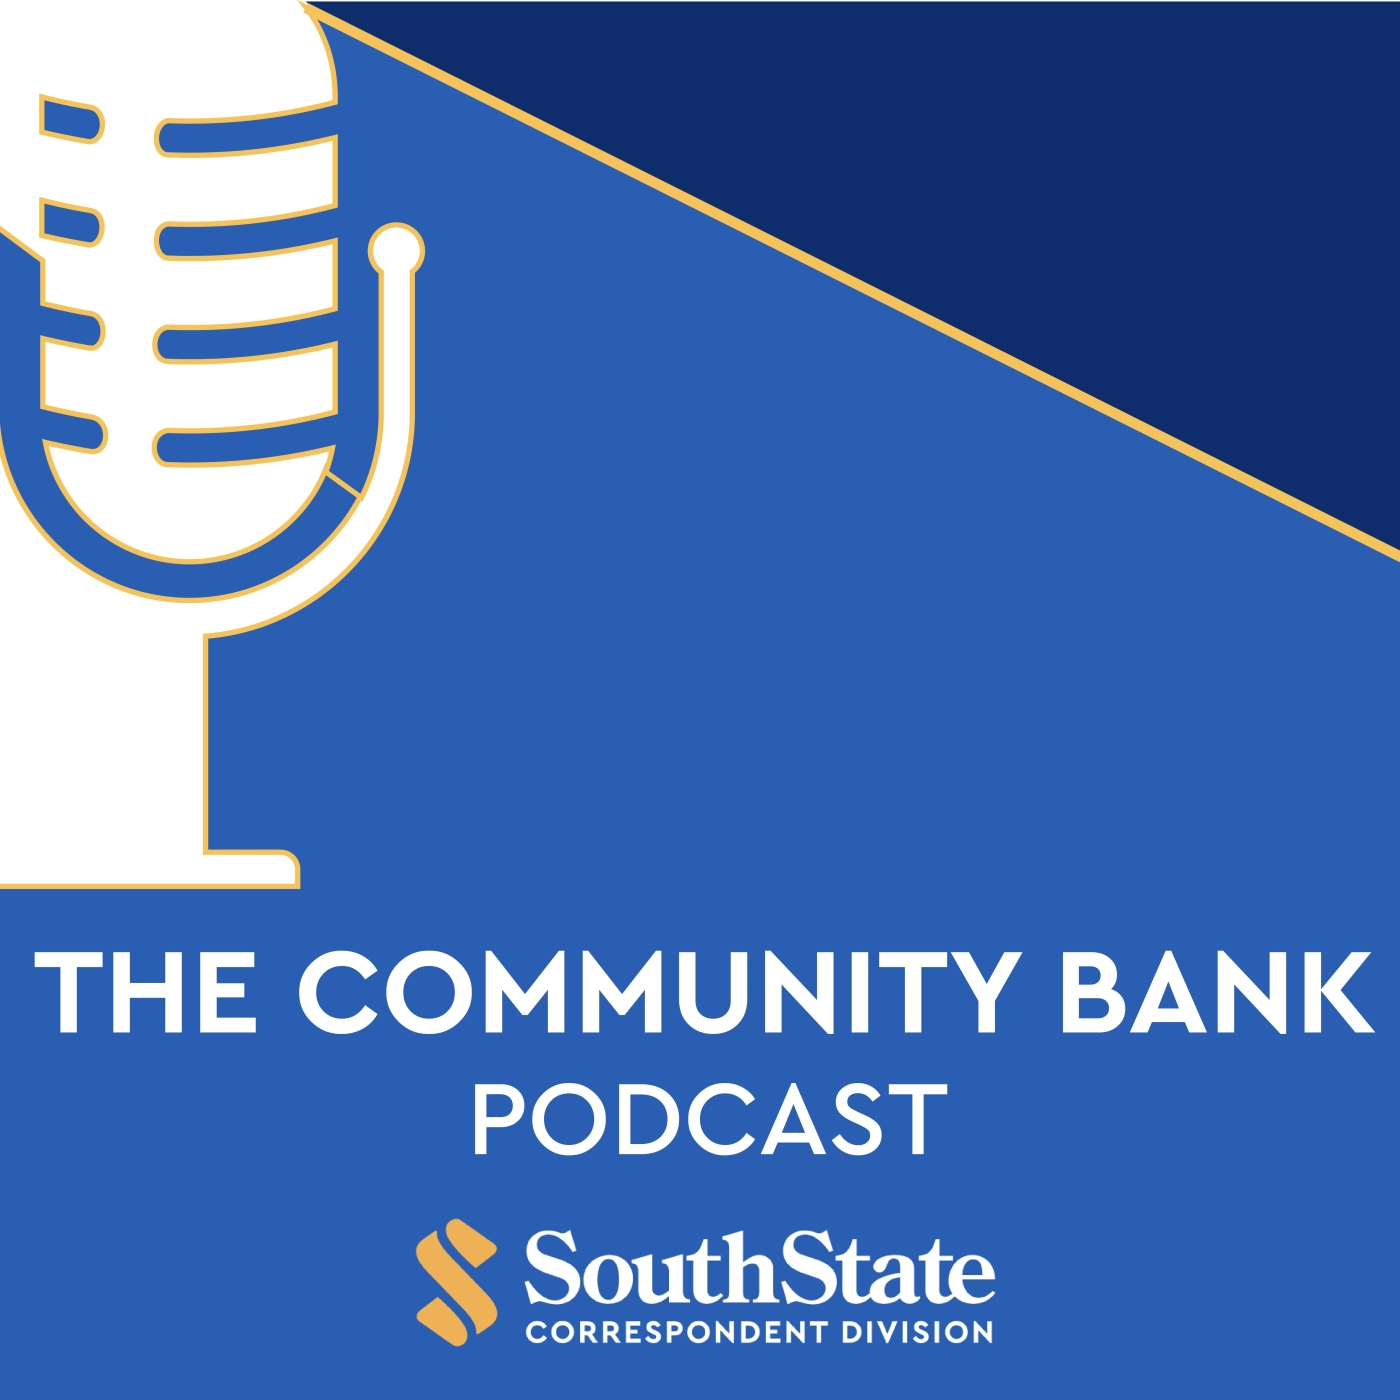 The Community Bank Podcast